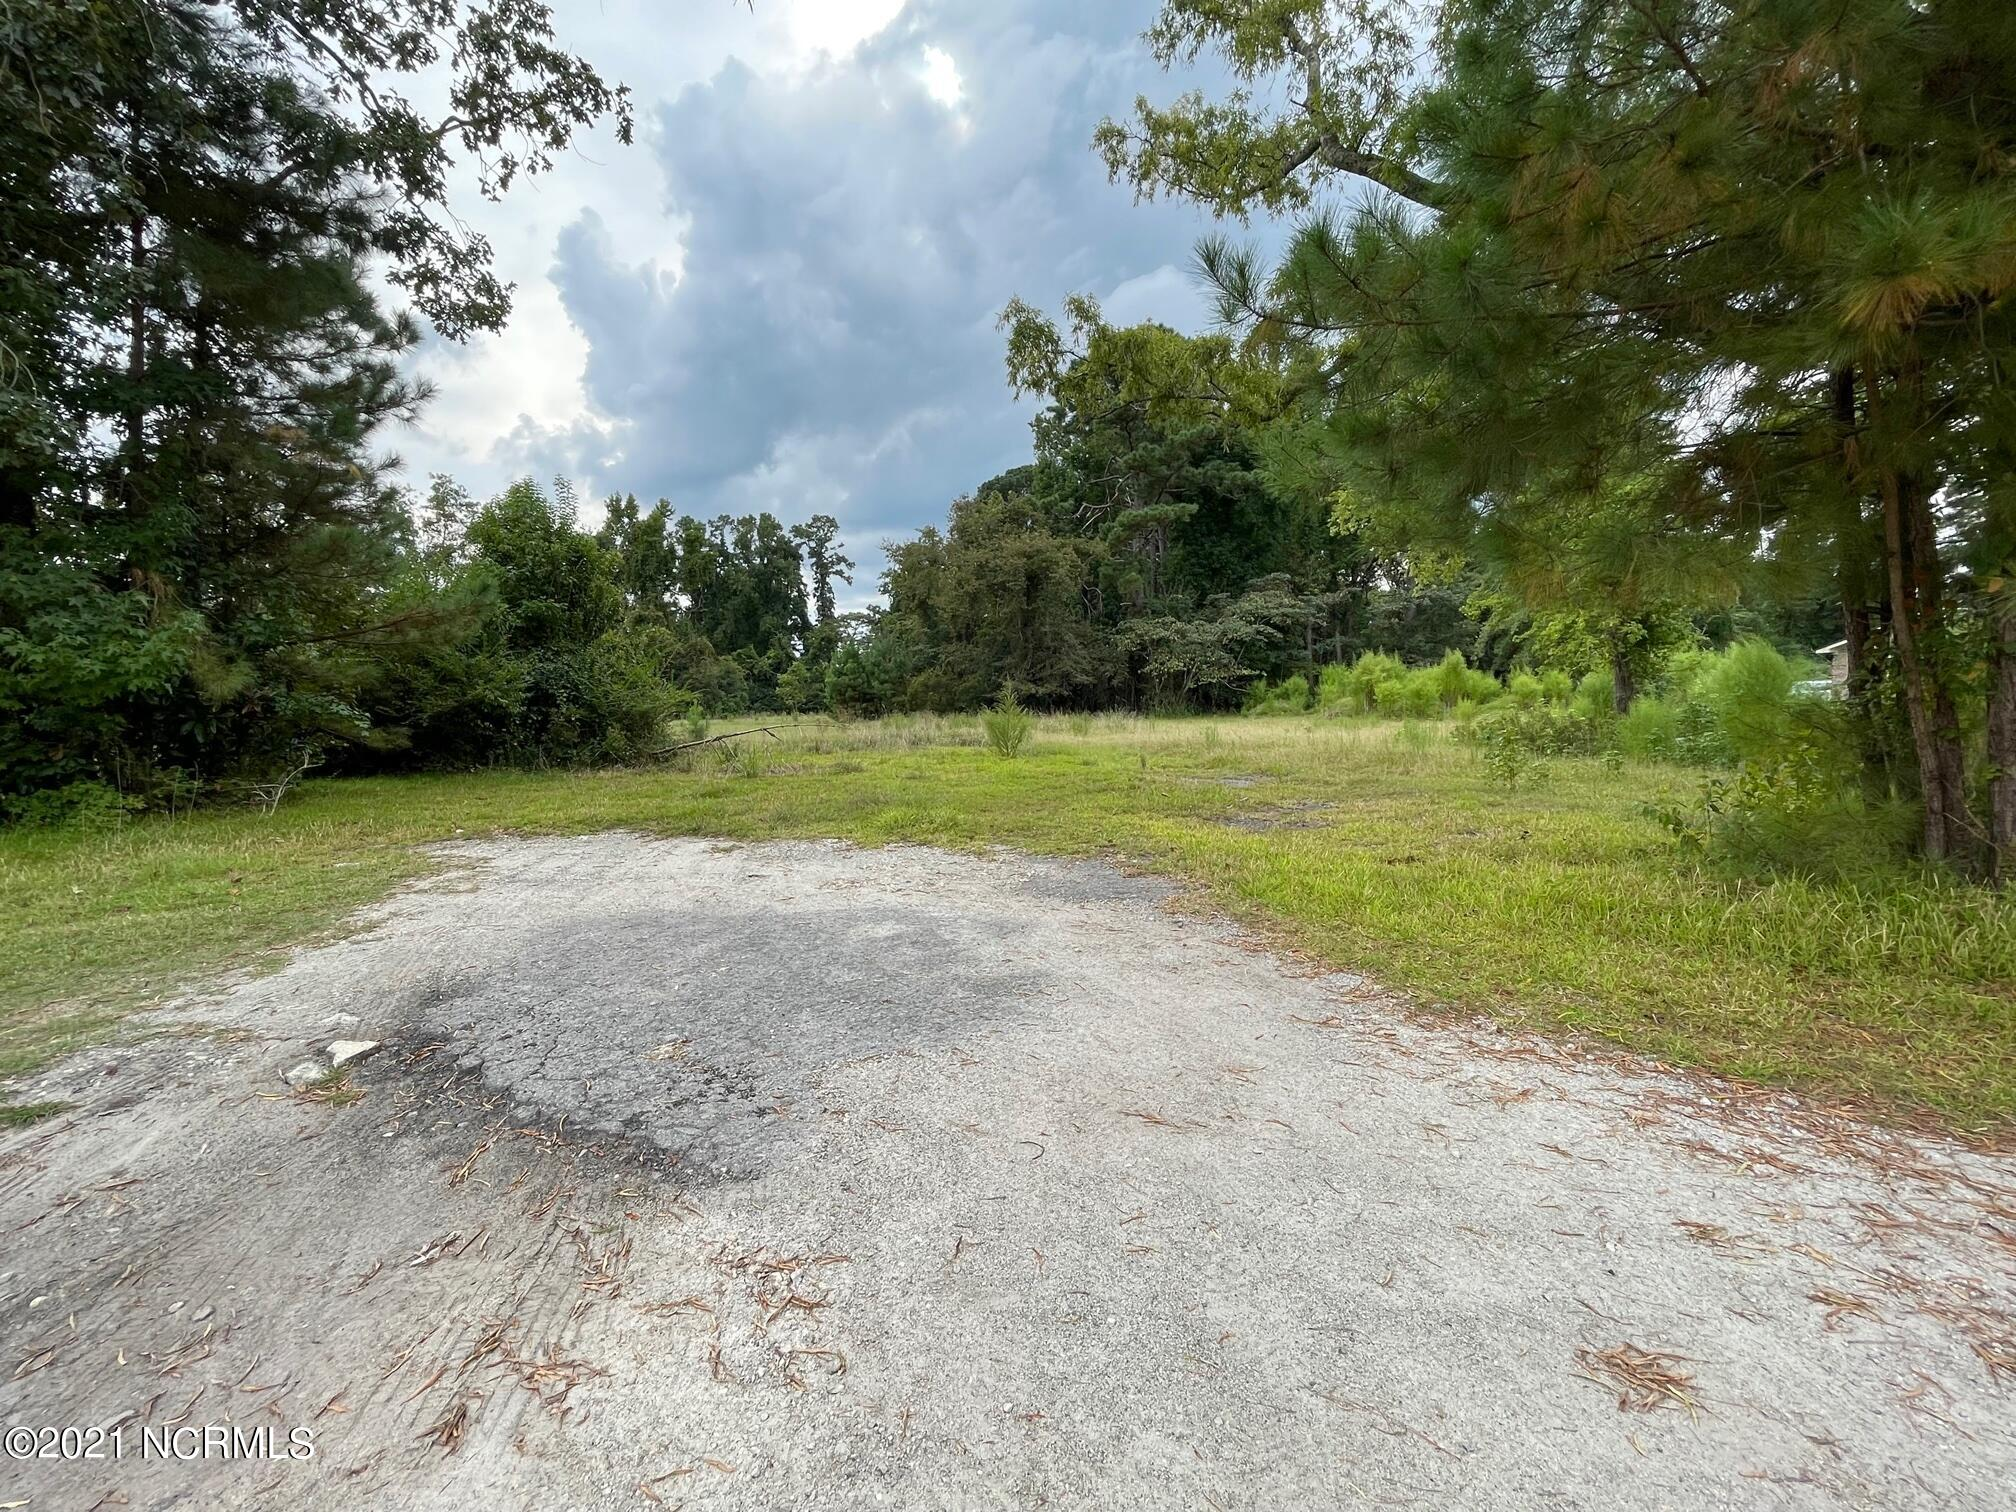 If you've been searching for an almost half acre buildable lot in the City Limits of Jacksonville close to shopping and entertainment, you FOUND it here! This lot previously had a home on it, so it will be an easy connection to electric and water/sewer. Call today to snag this lot!